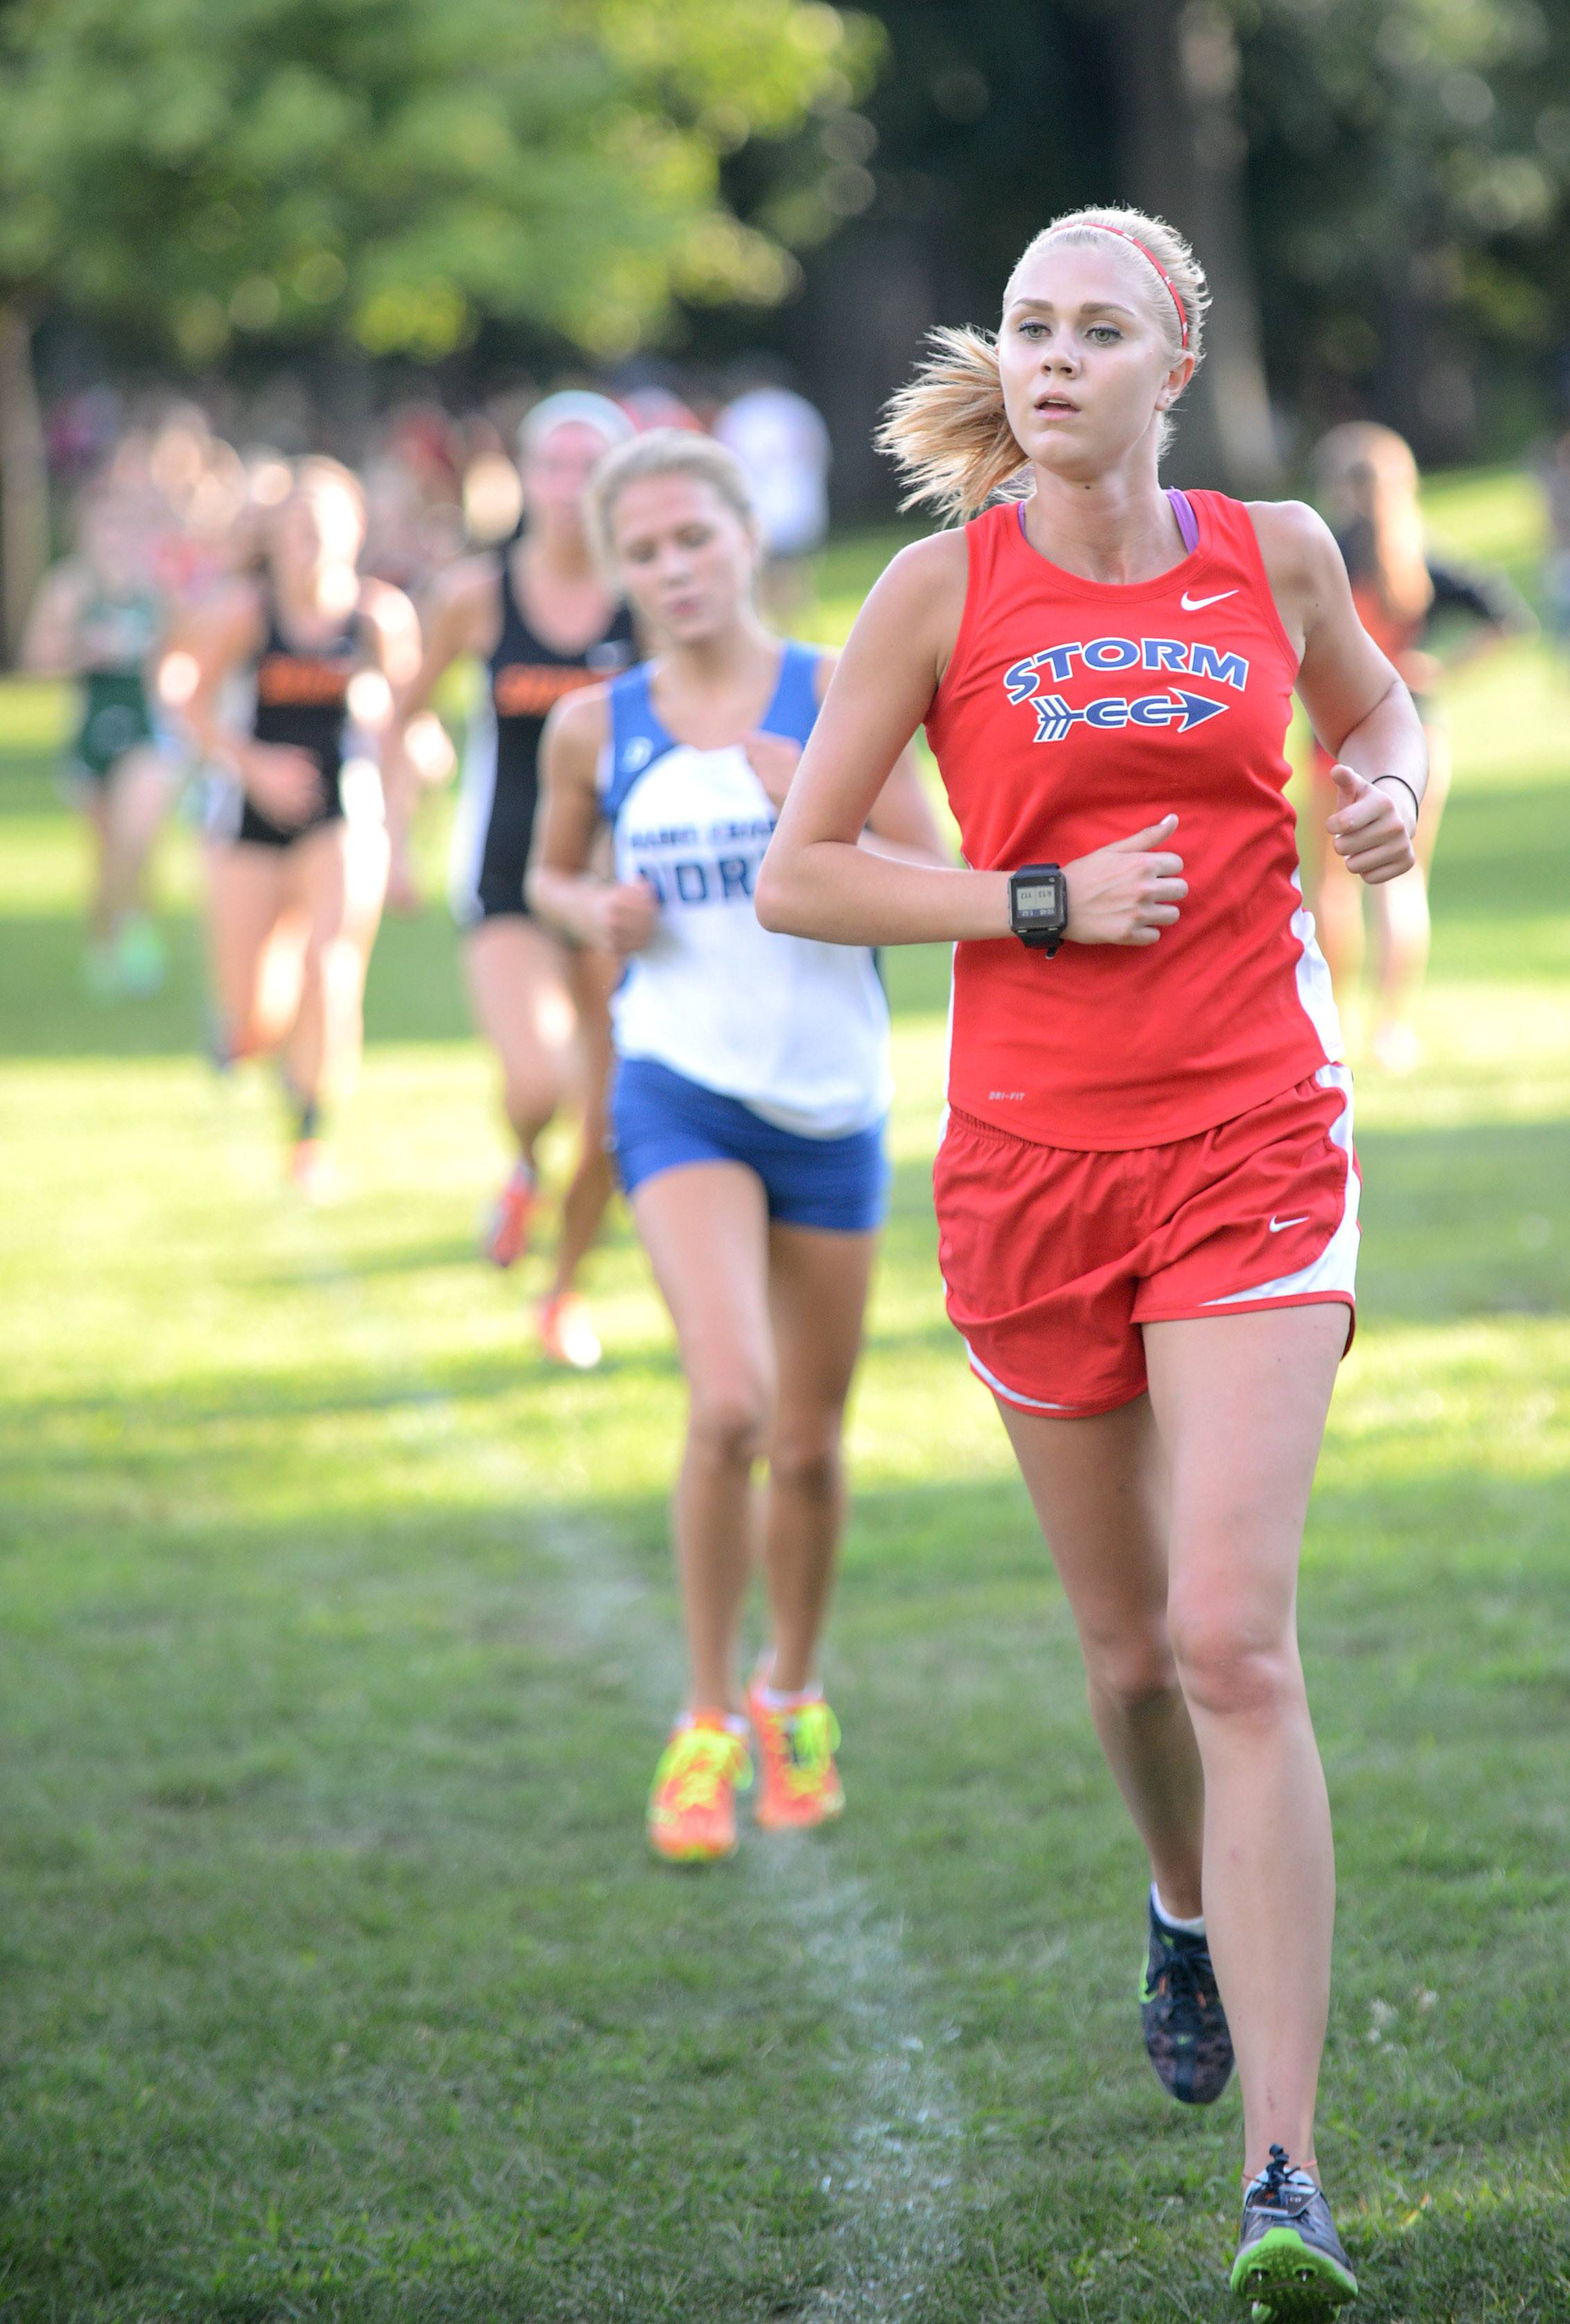 South Elgin's Sam Czuprynski would cross first for her varsity team at the Elgin Invite cross country meet at Lords Park in Elgin on Tuesday.